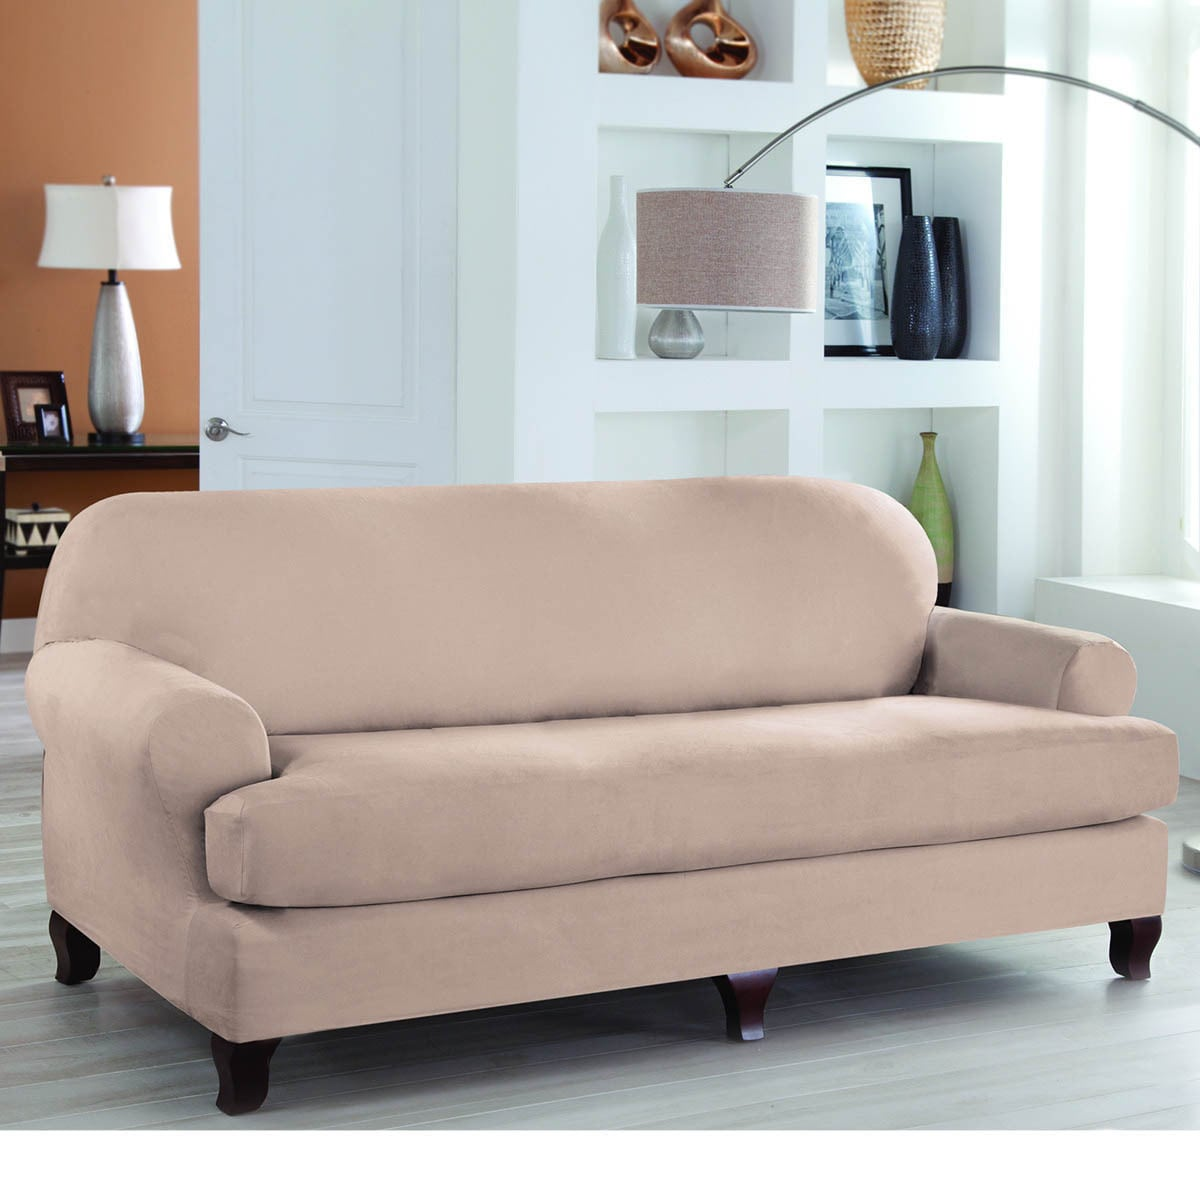 Details about Tailor Fit Stretch Fit 2 Piece Sofa Slipcover